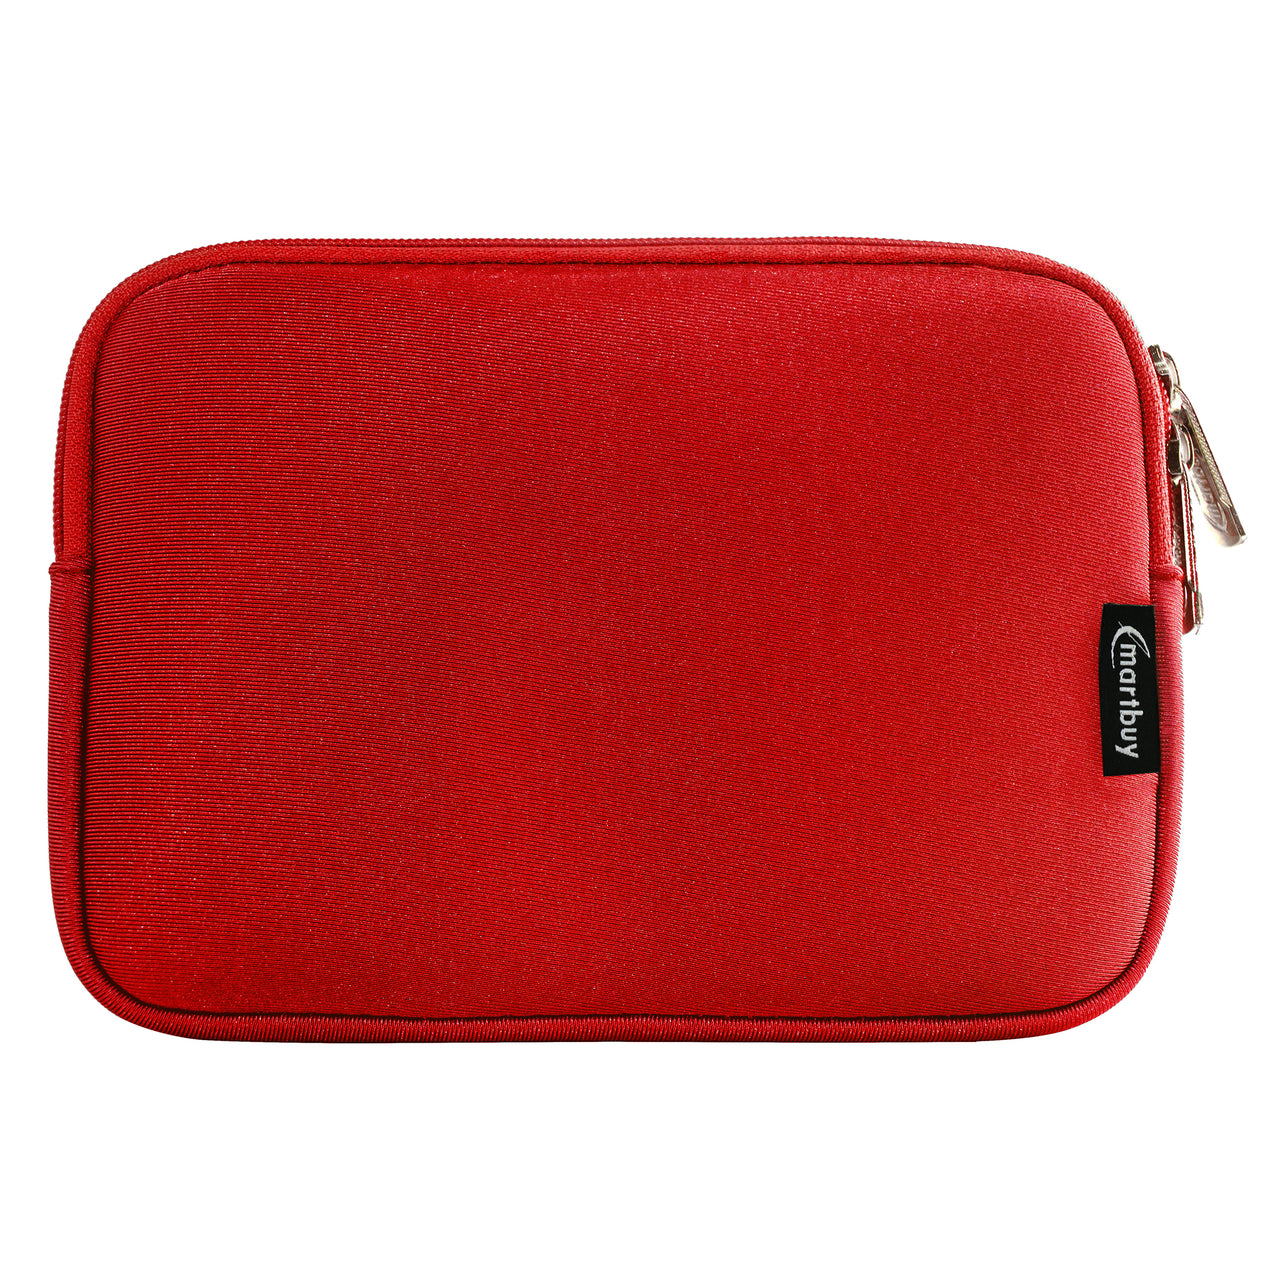 Universal Neoprene Case - Red